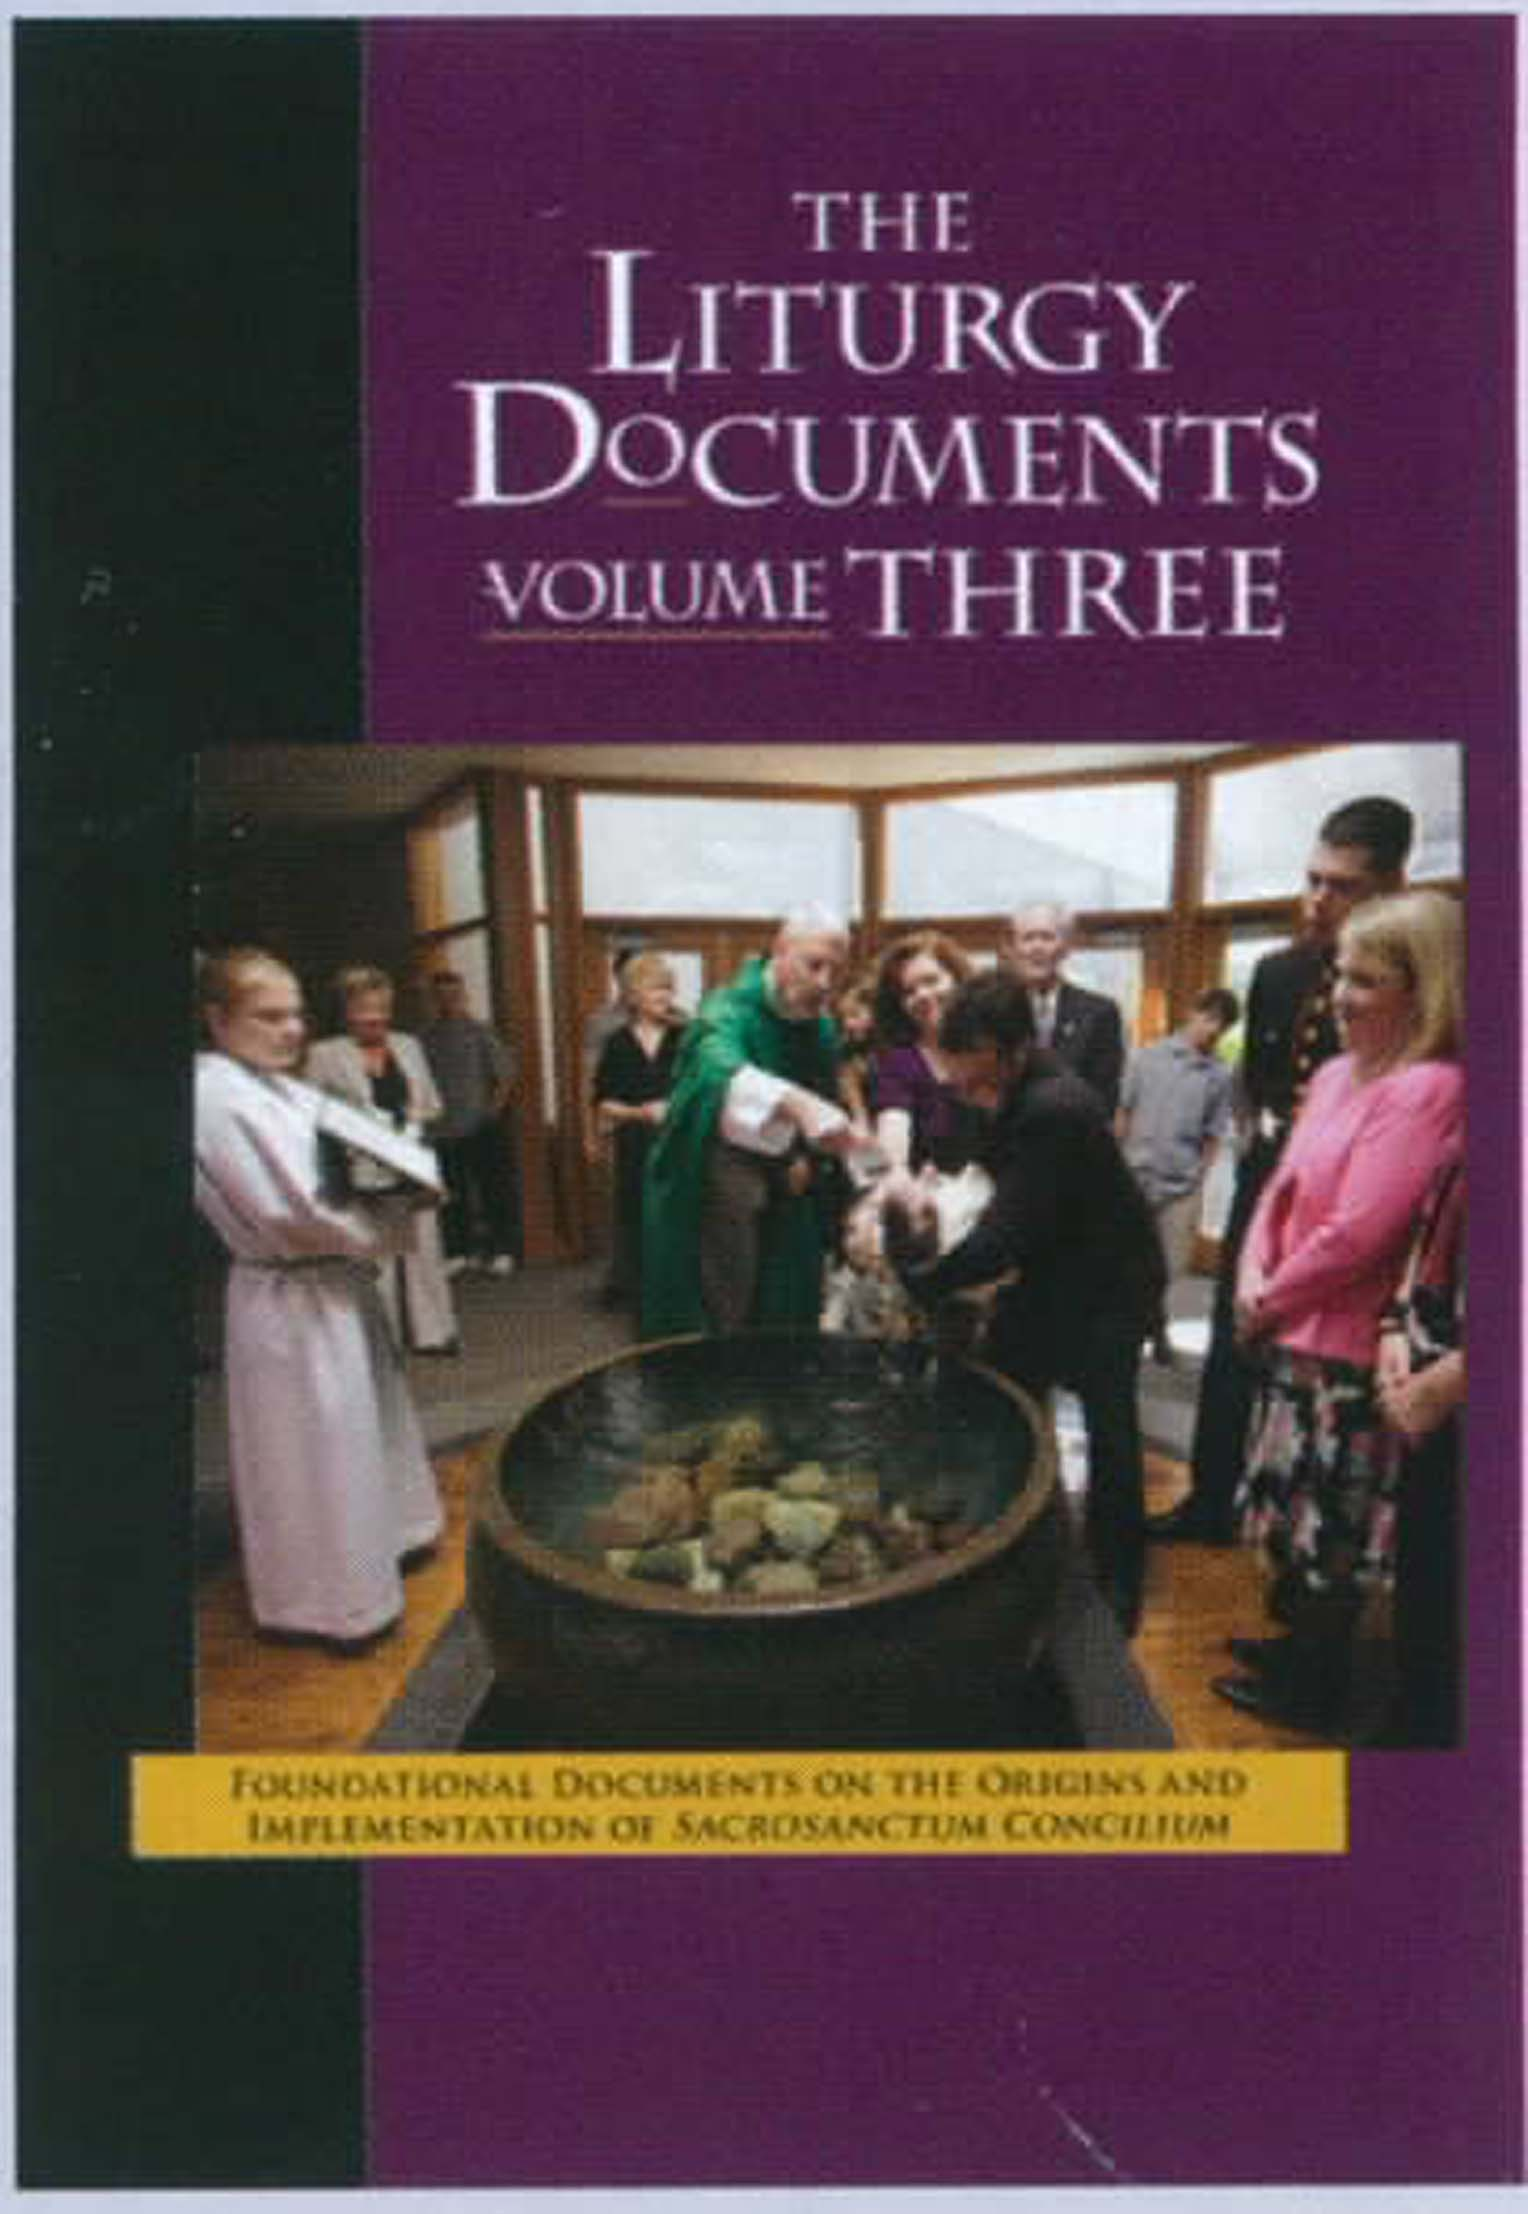 The Liturgy Documents Volume Three from Liturgy Training Publications 120-9781616711016